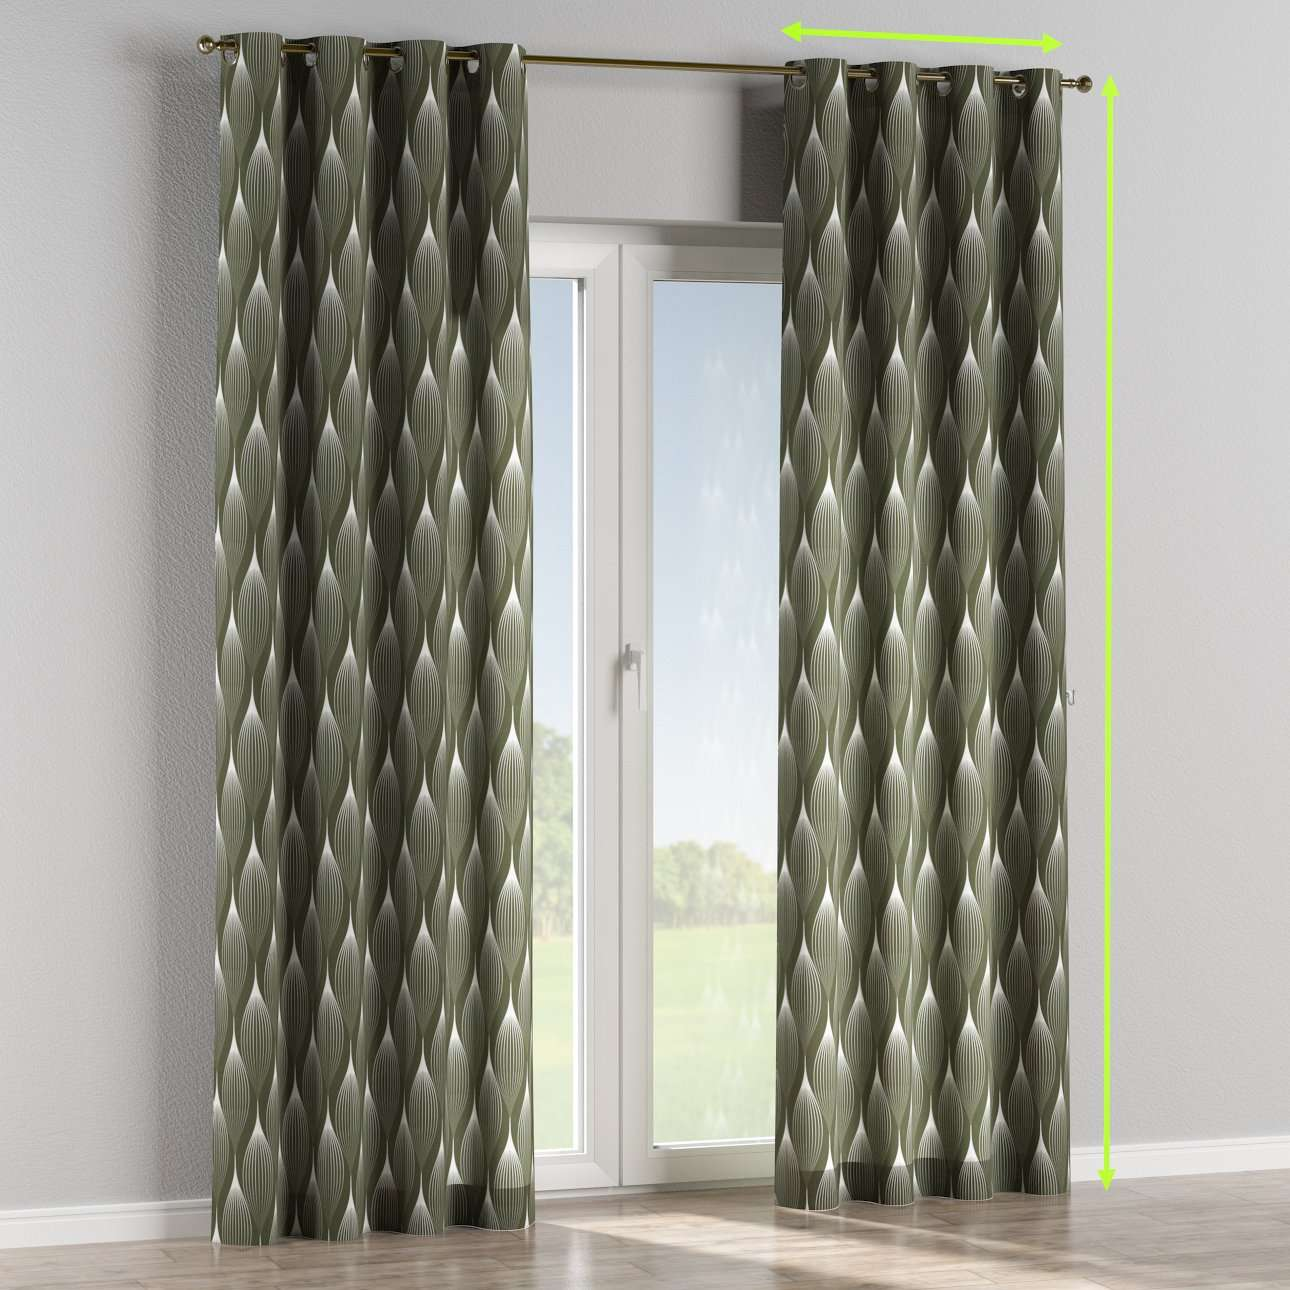 Eyelet lined curtains in collection Comic Book & Geo Prints, fabric: 135-20